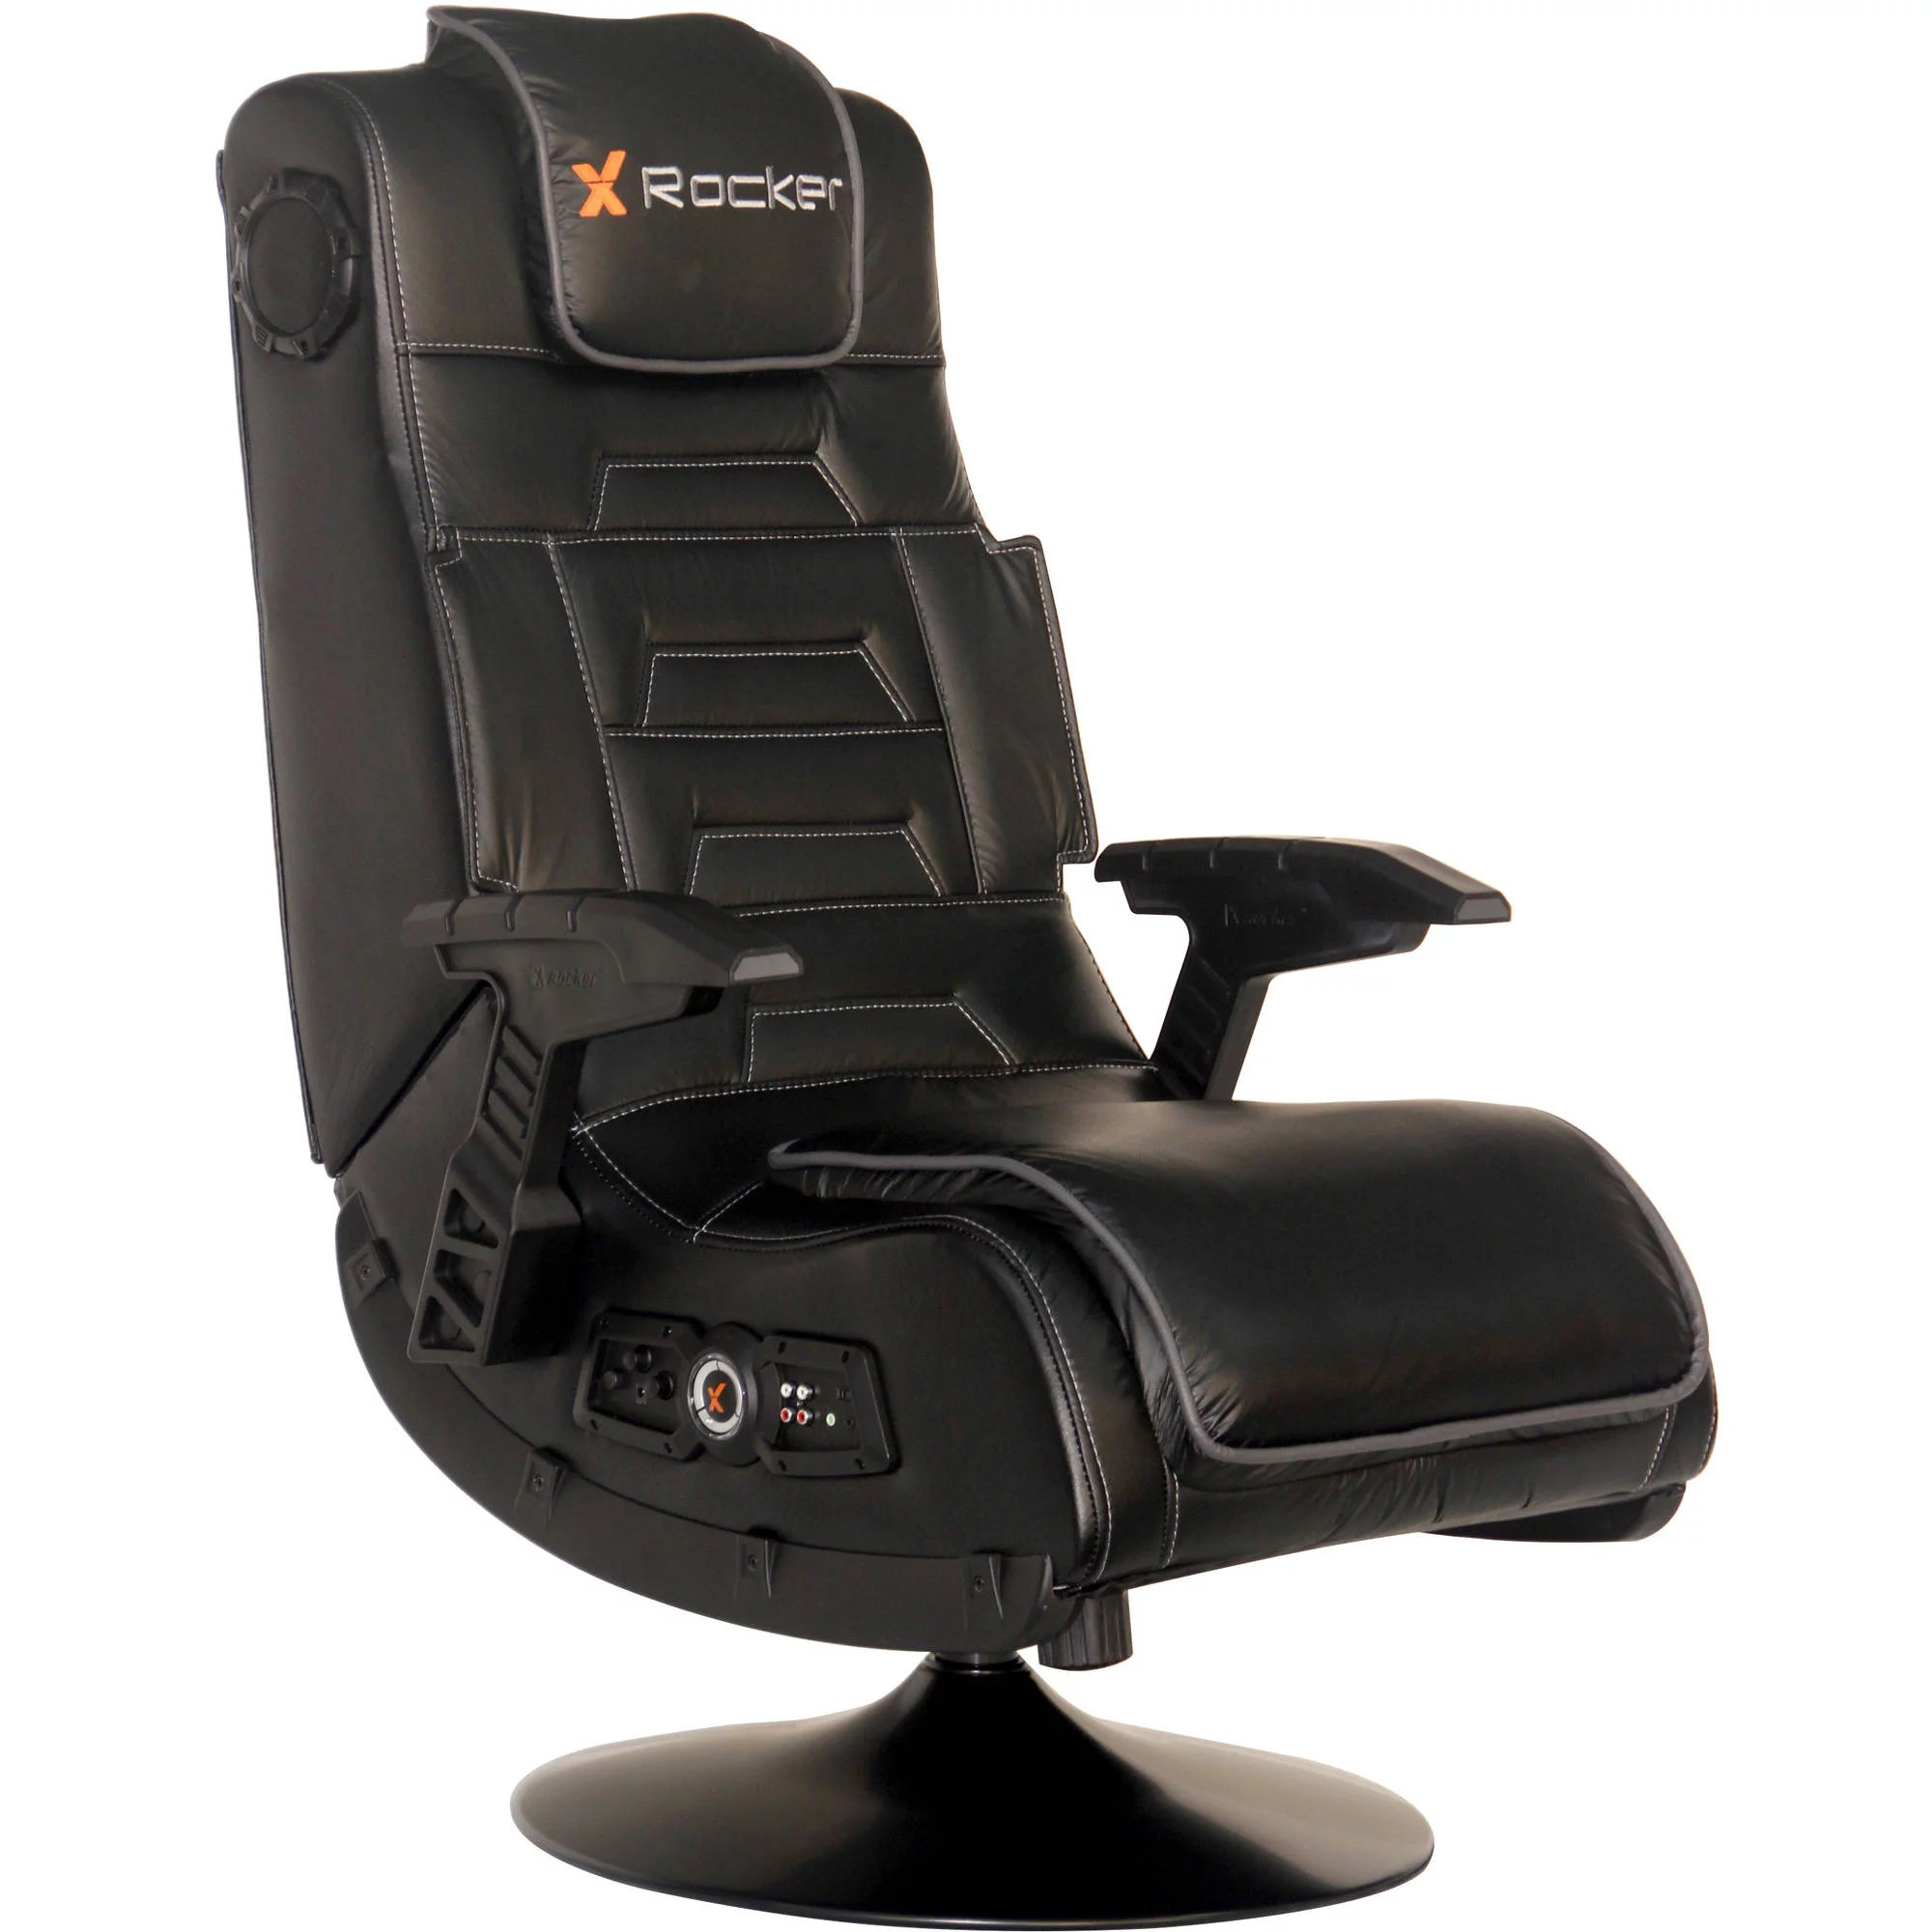 Video Game Chairs Details About Best Gaming Chair With Speakers Video Game Chairs Black For Adults Kids X Rocker